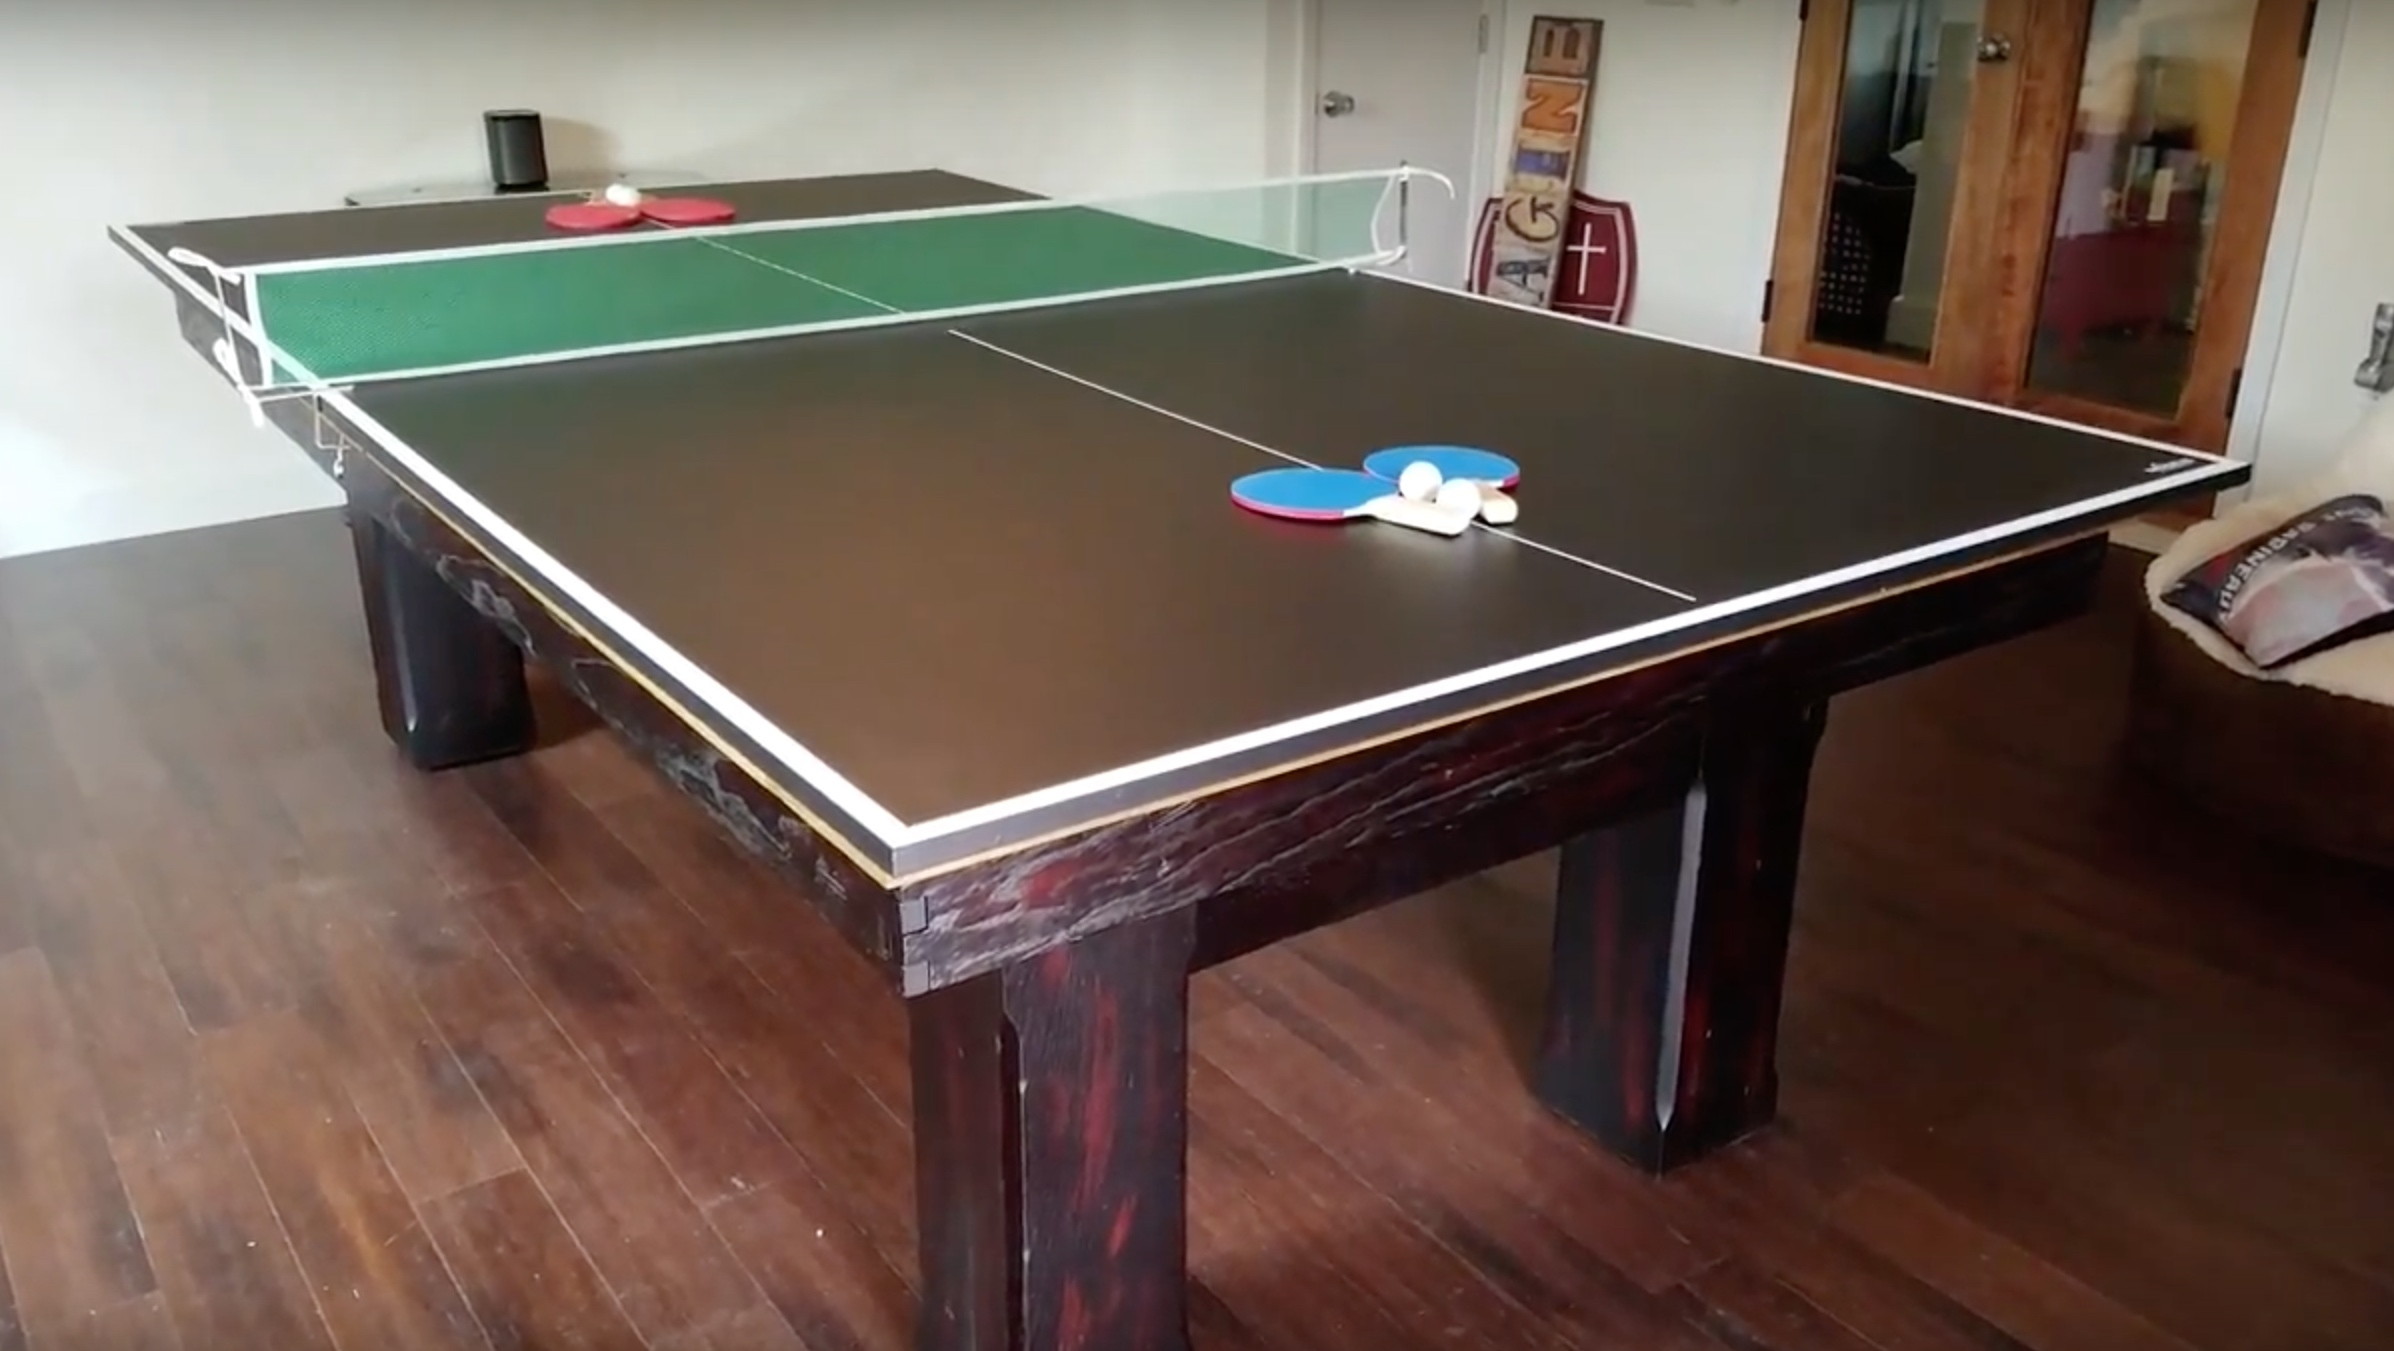 Enjoyable The 5 Best Table Tennis Conversion Top Reviews Ping Pong On Home Interior And Landscaping Oversignezvosmurscom